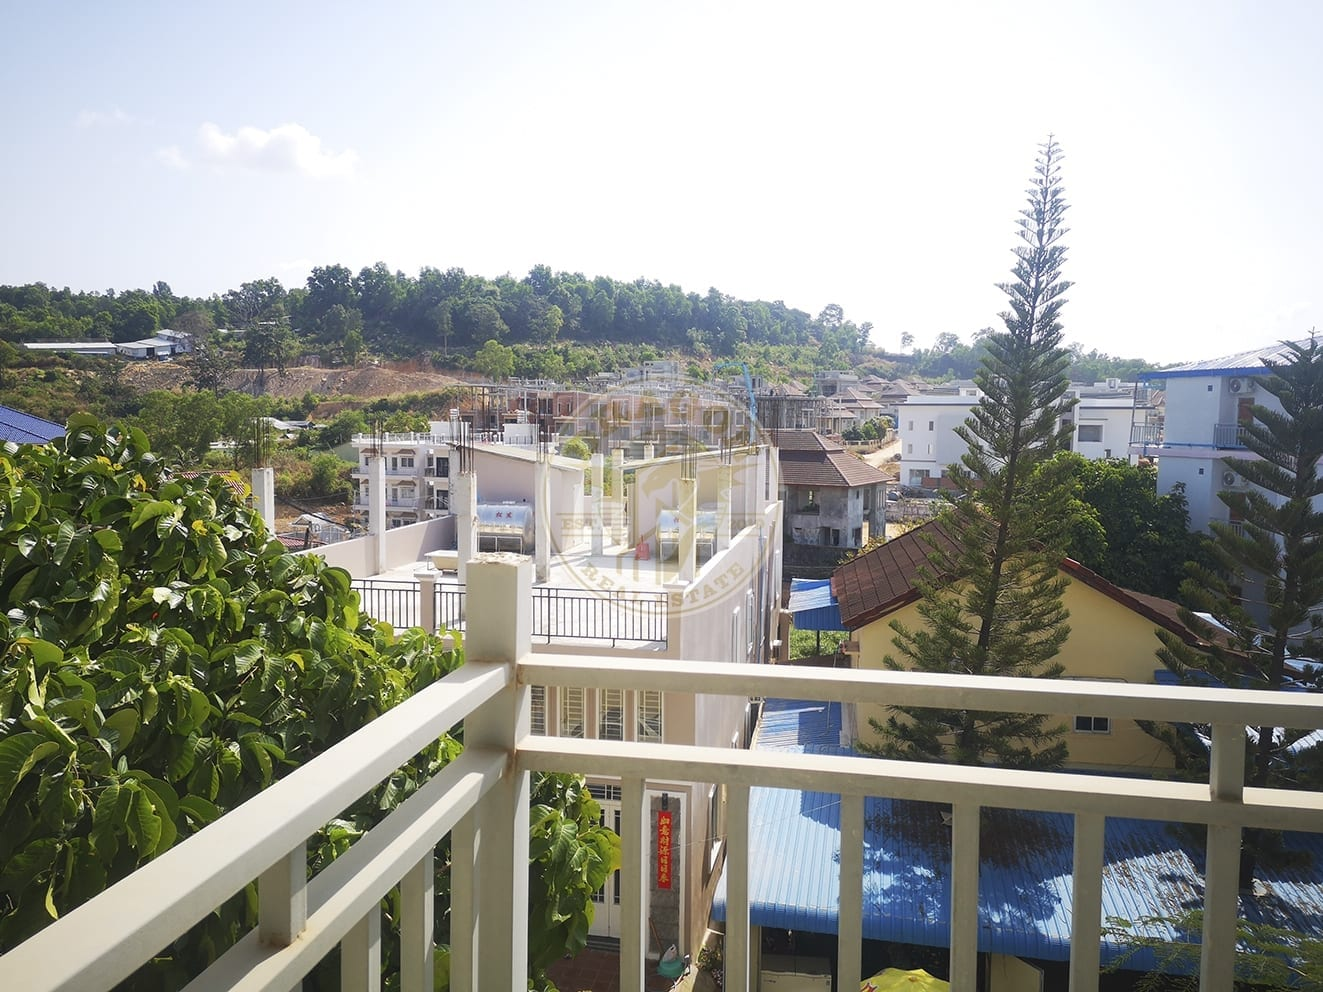 Apartment w/ Two balconies for Rent. Sihanoukville Cambodia Property Sale